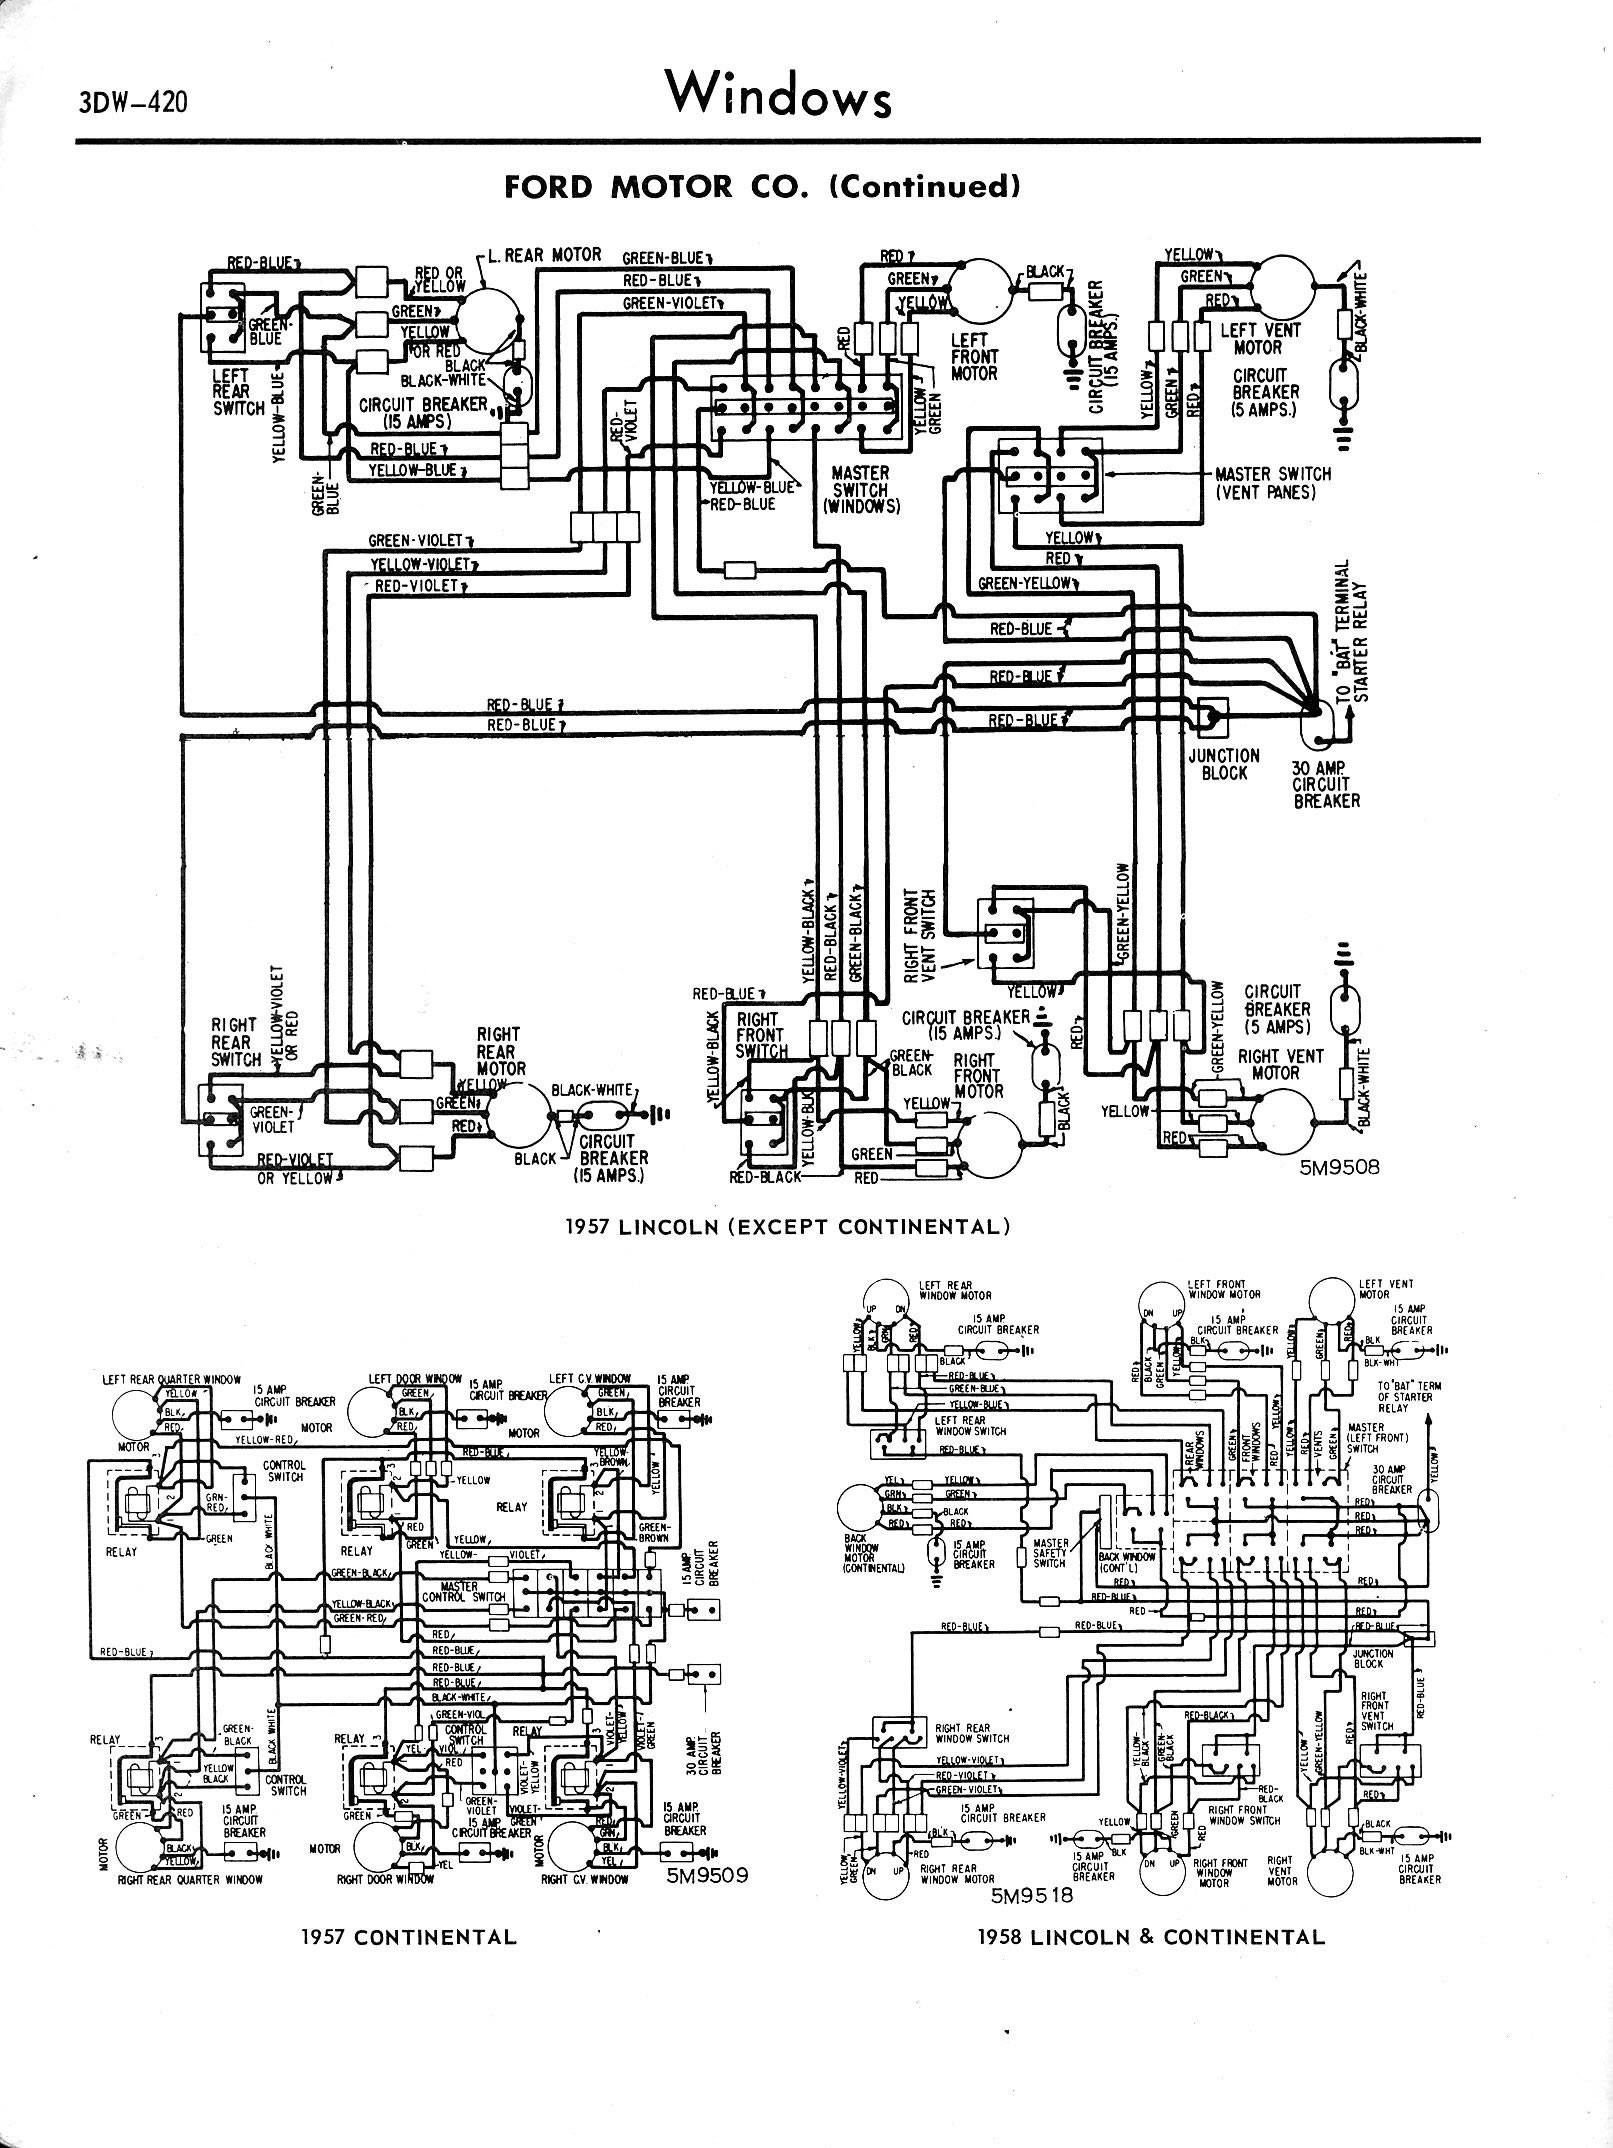 wiring diagram car 7 3 ford diesel diagrams wiring diagram